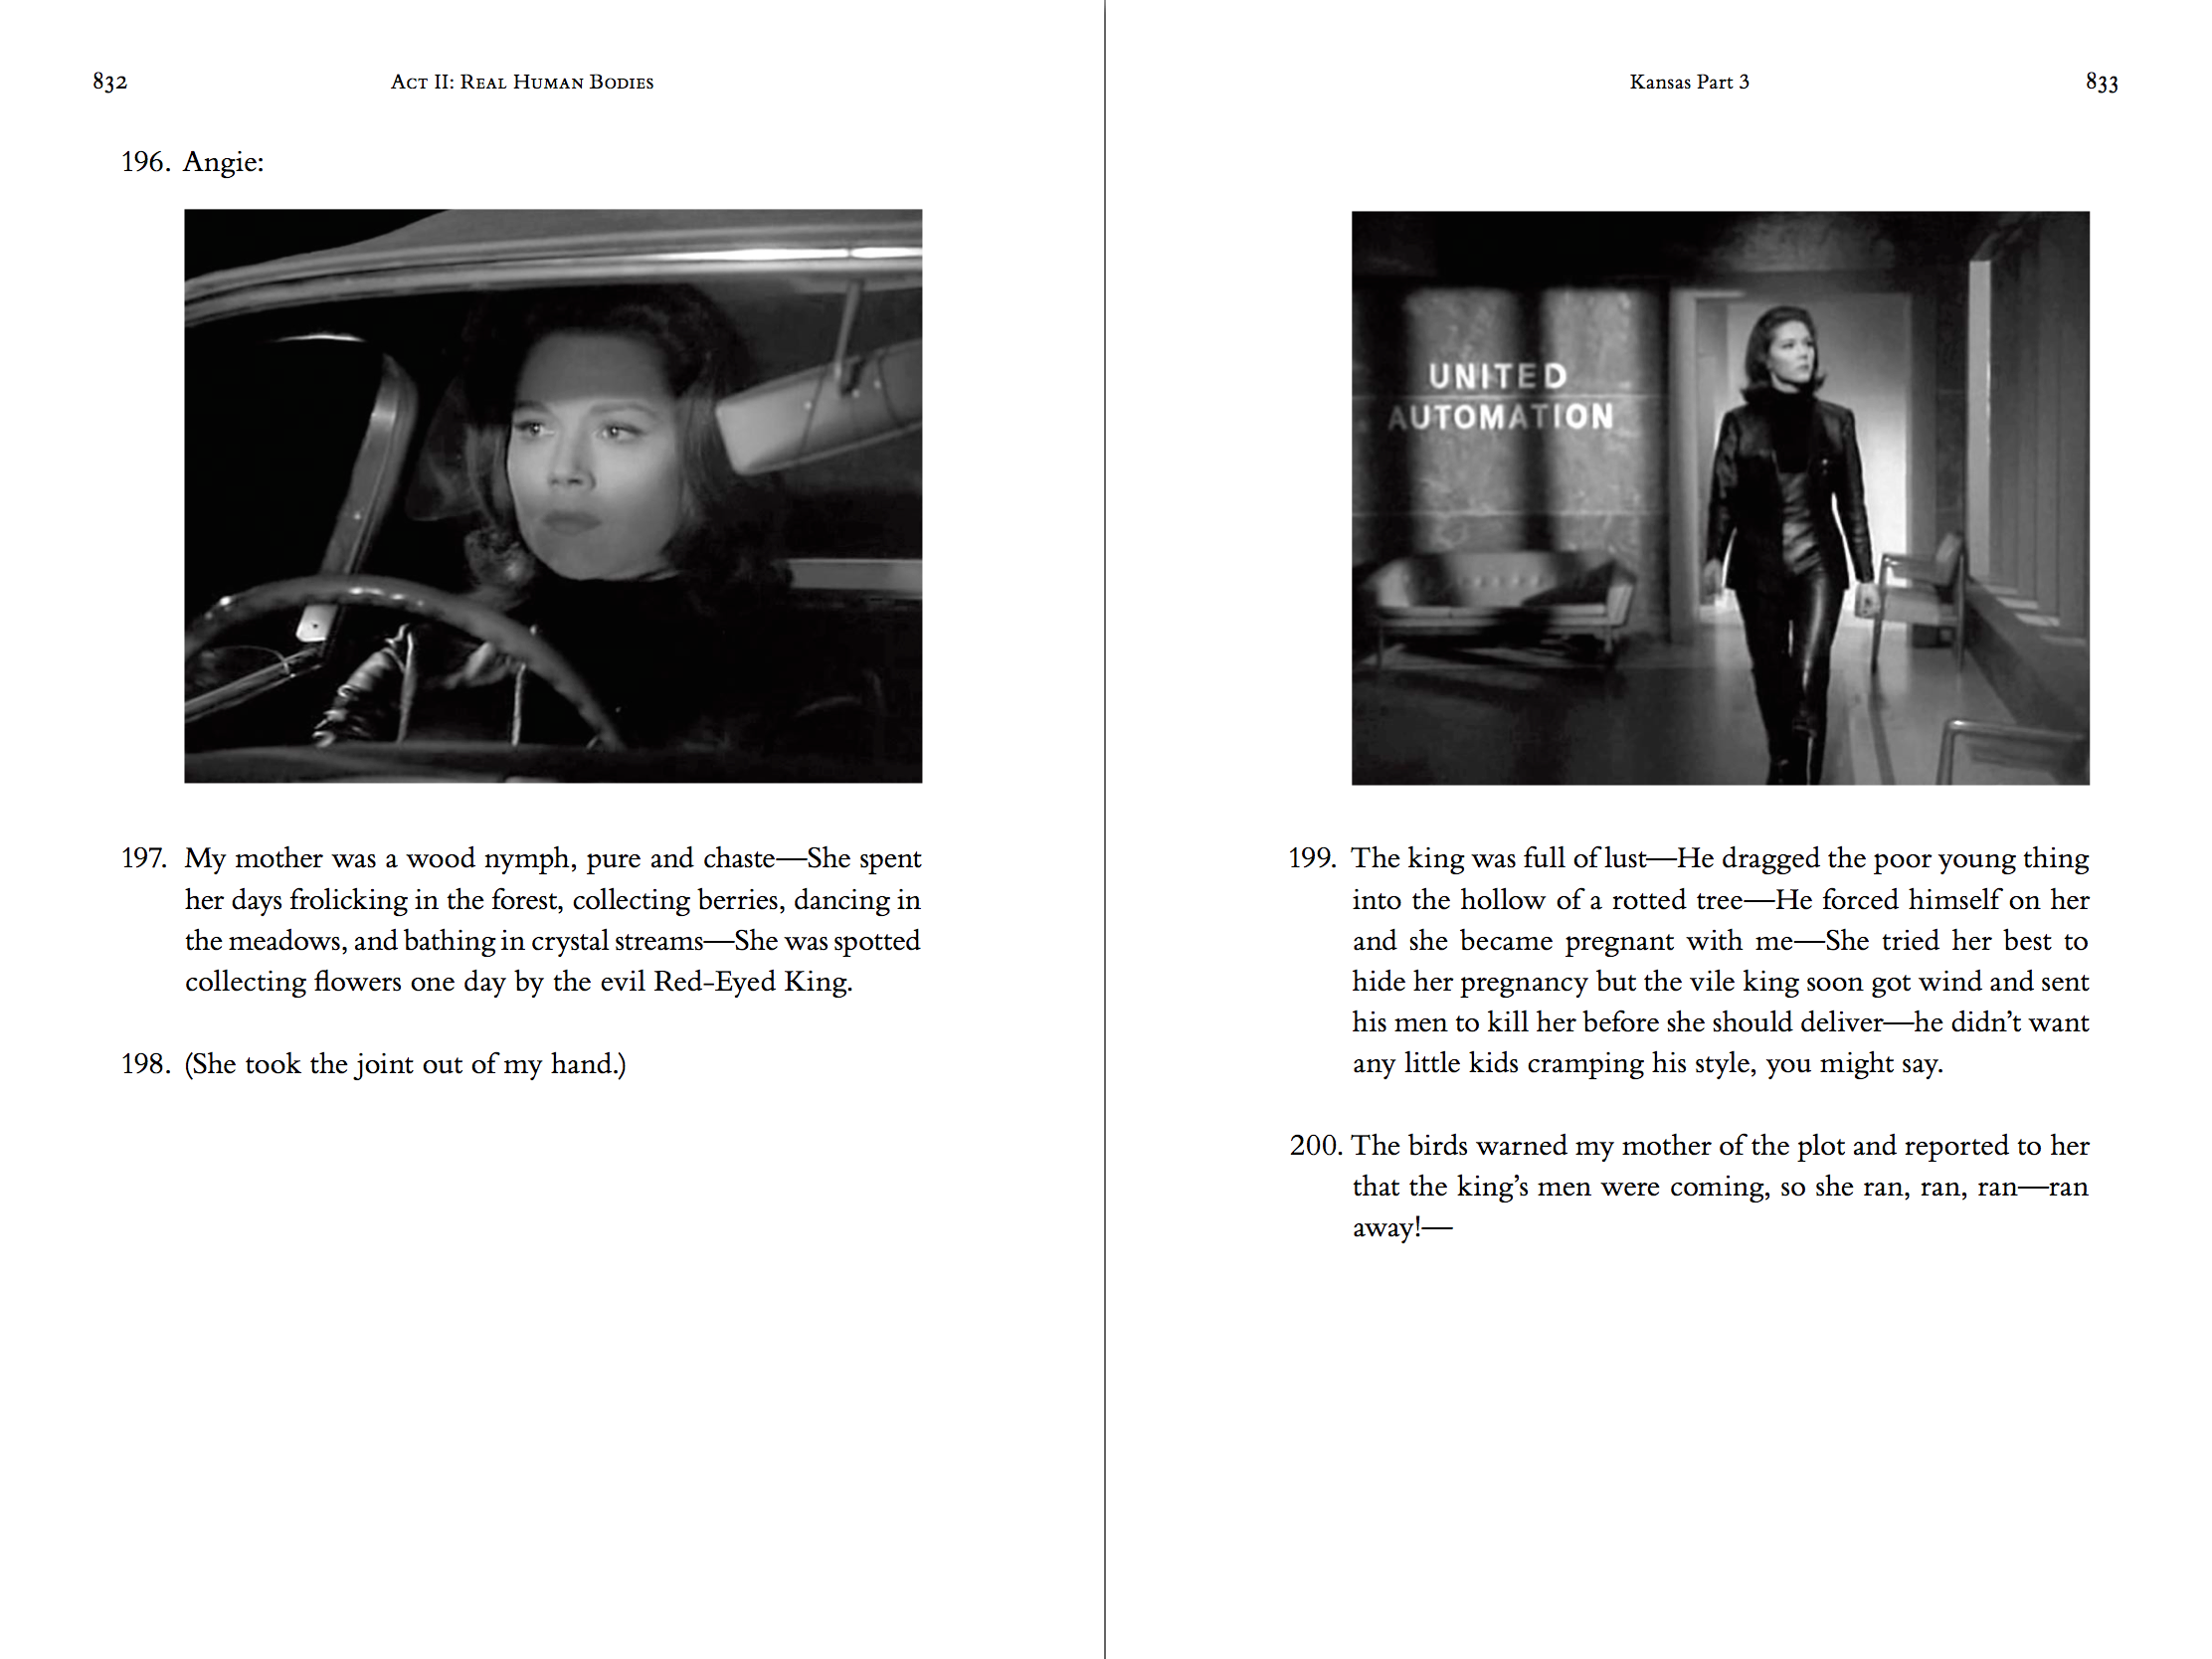 Two-page spread of the hardcover, printed version of the novel theMystery.doc by Matthew McIntosh. Verso: Black and white still from a historic TV show. a female agent behind the wheel of a car. Recto: Black and white still from a historic TV show. The agent walks into a robot factory.